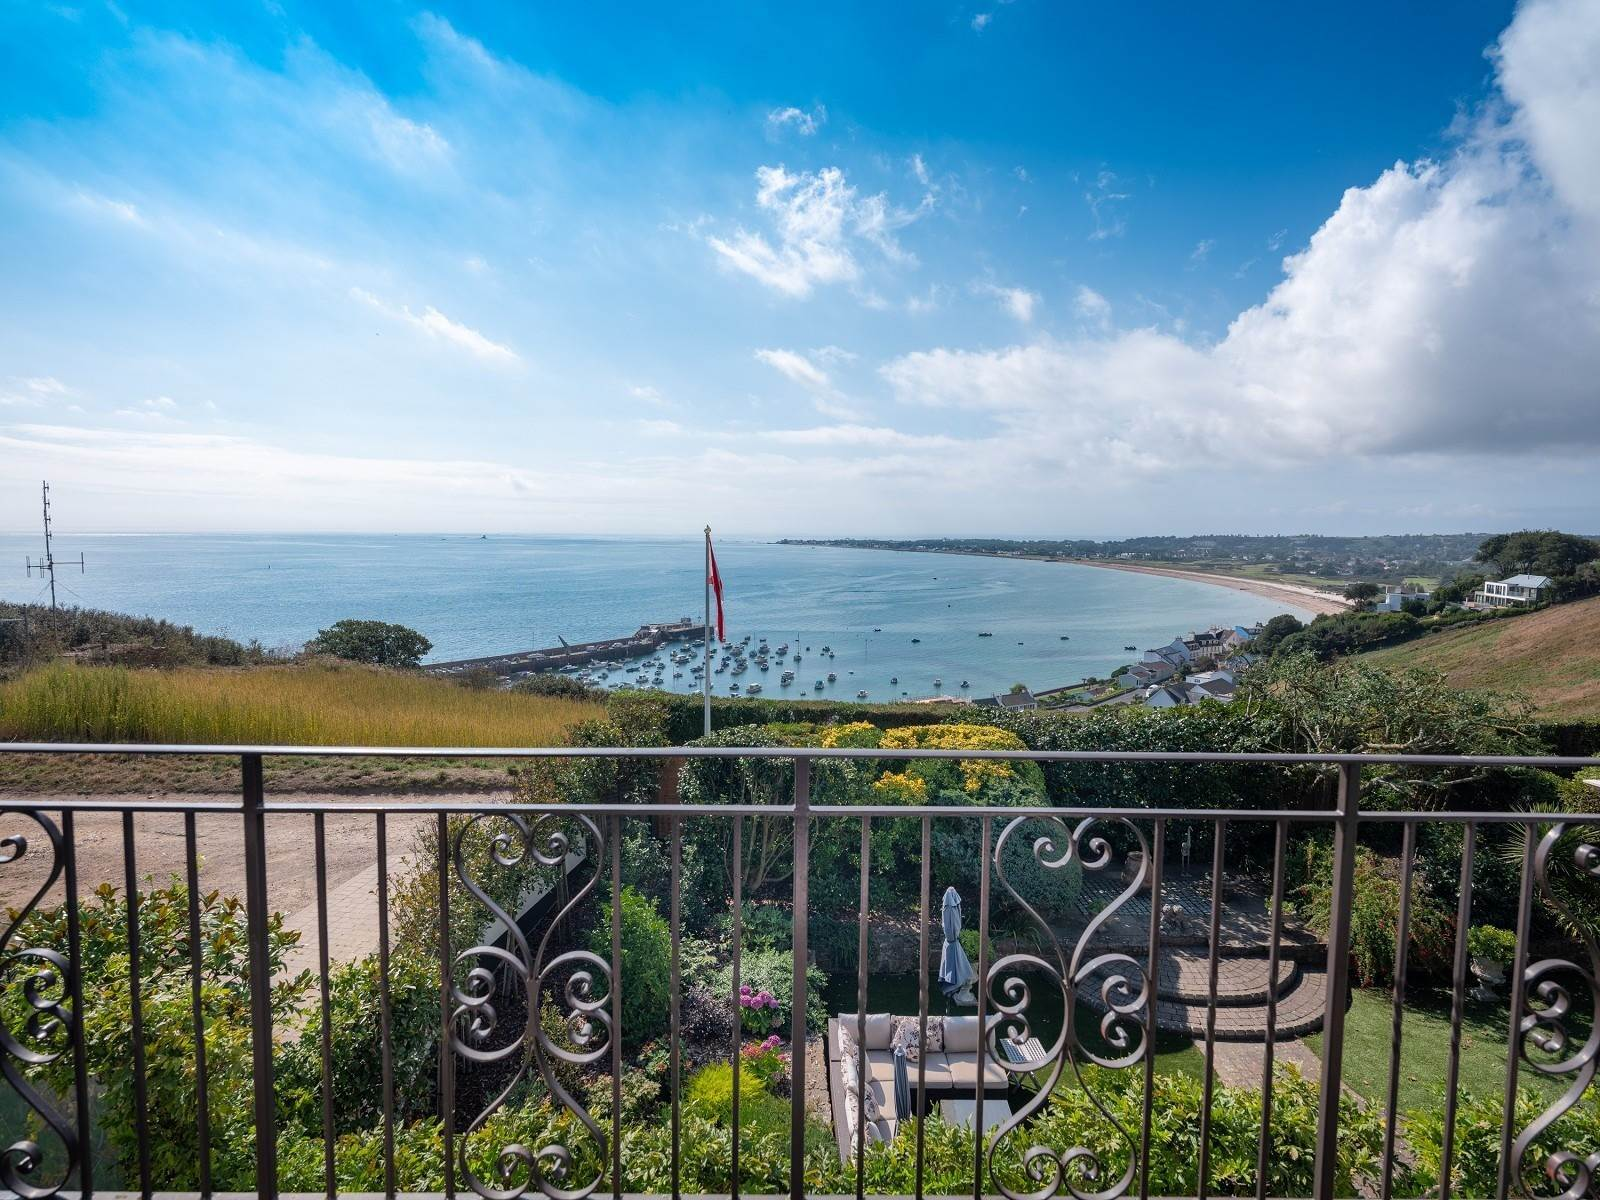 Single Family Home for Sale at Views to France and across the Royal Bay of Grouville! St Martin,JE3 6DX Jersey